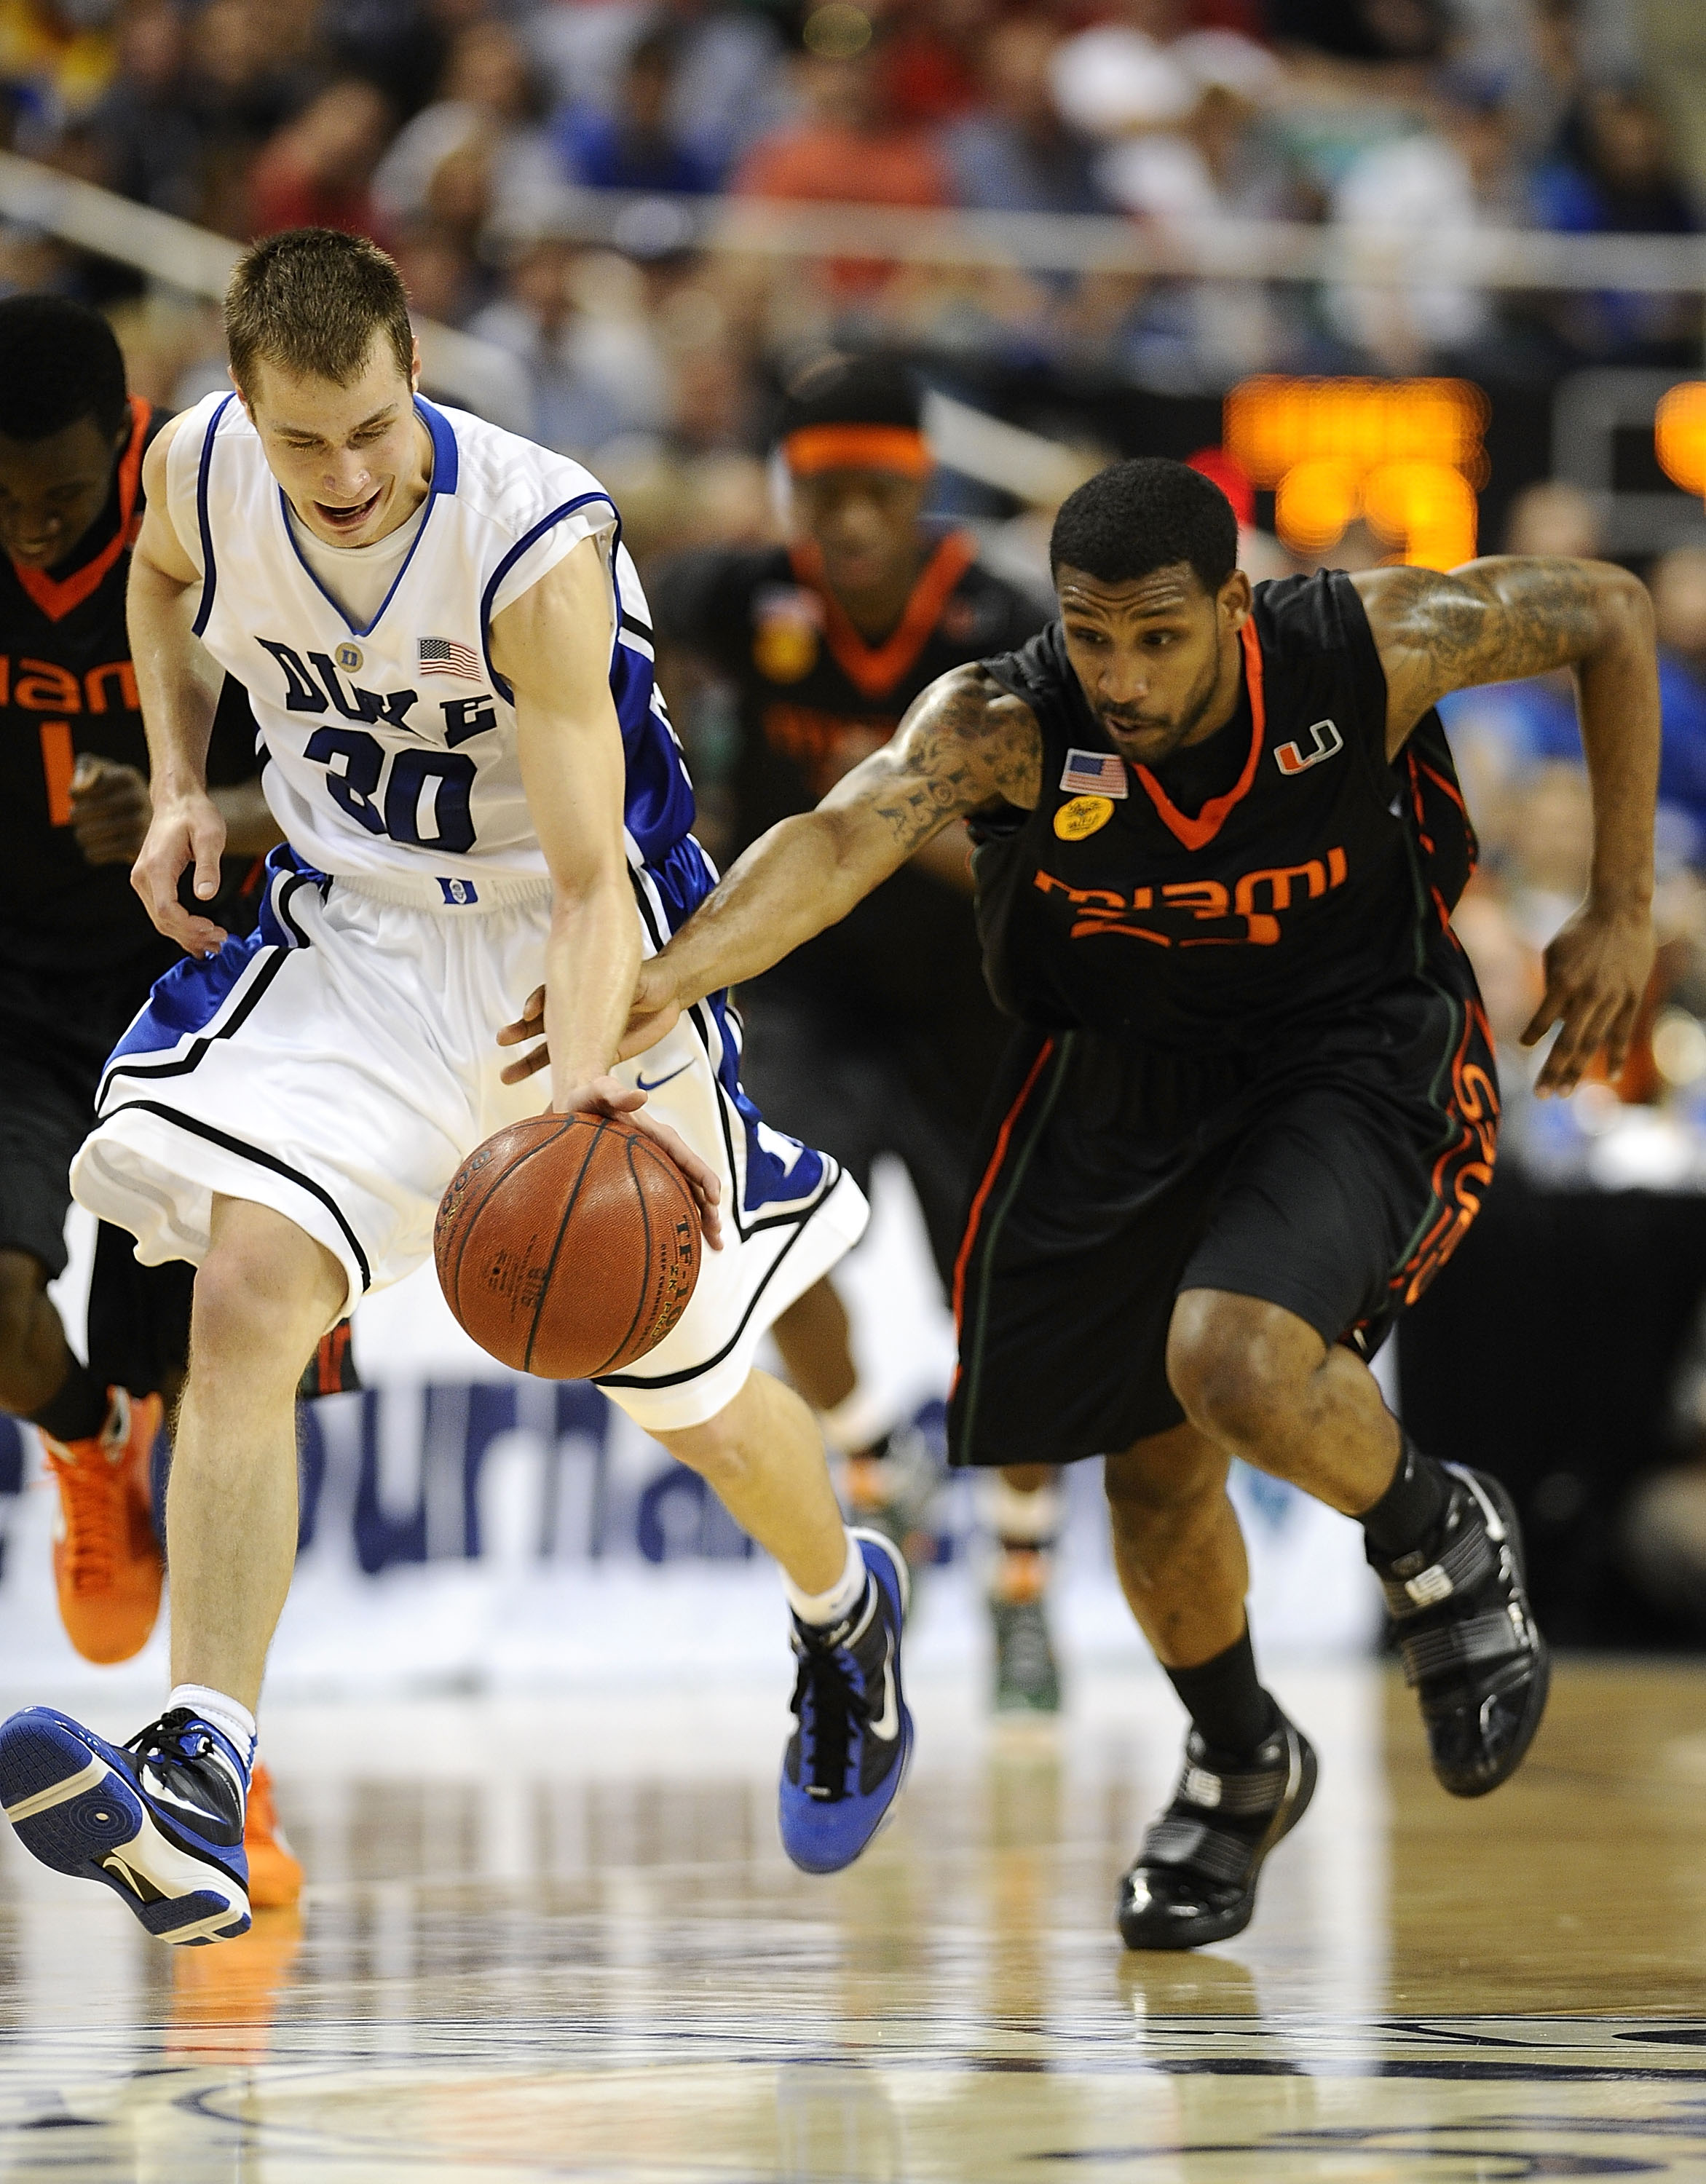 GREENSBORO, NC - MARCH 13:  Jon Scheyer #30 of the Duke Blue Devils and James Dews #23 of the University of Miami Hurricanes chase a ball in their semifinal game in the 2010 ACC Men's Basketball Tournament at the Greensboro Coliseum on on March 13, 2010 i